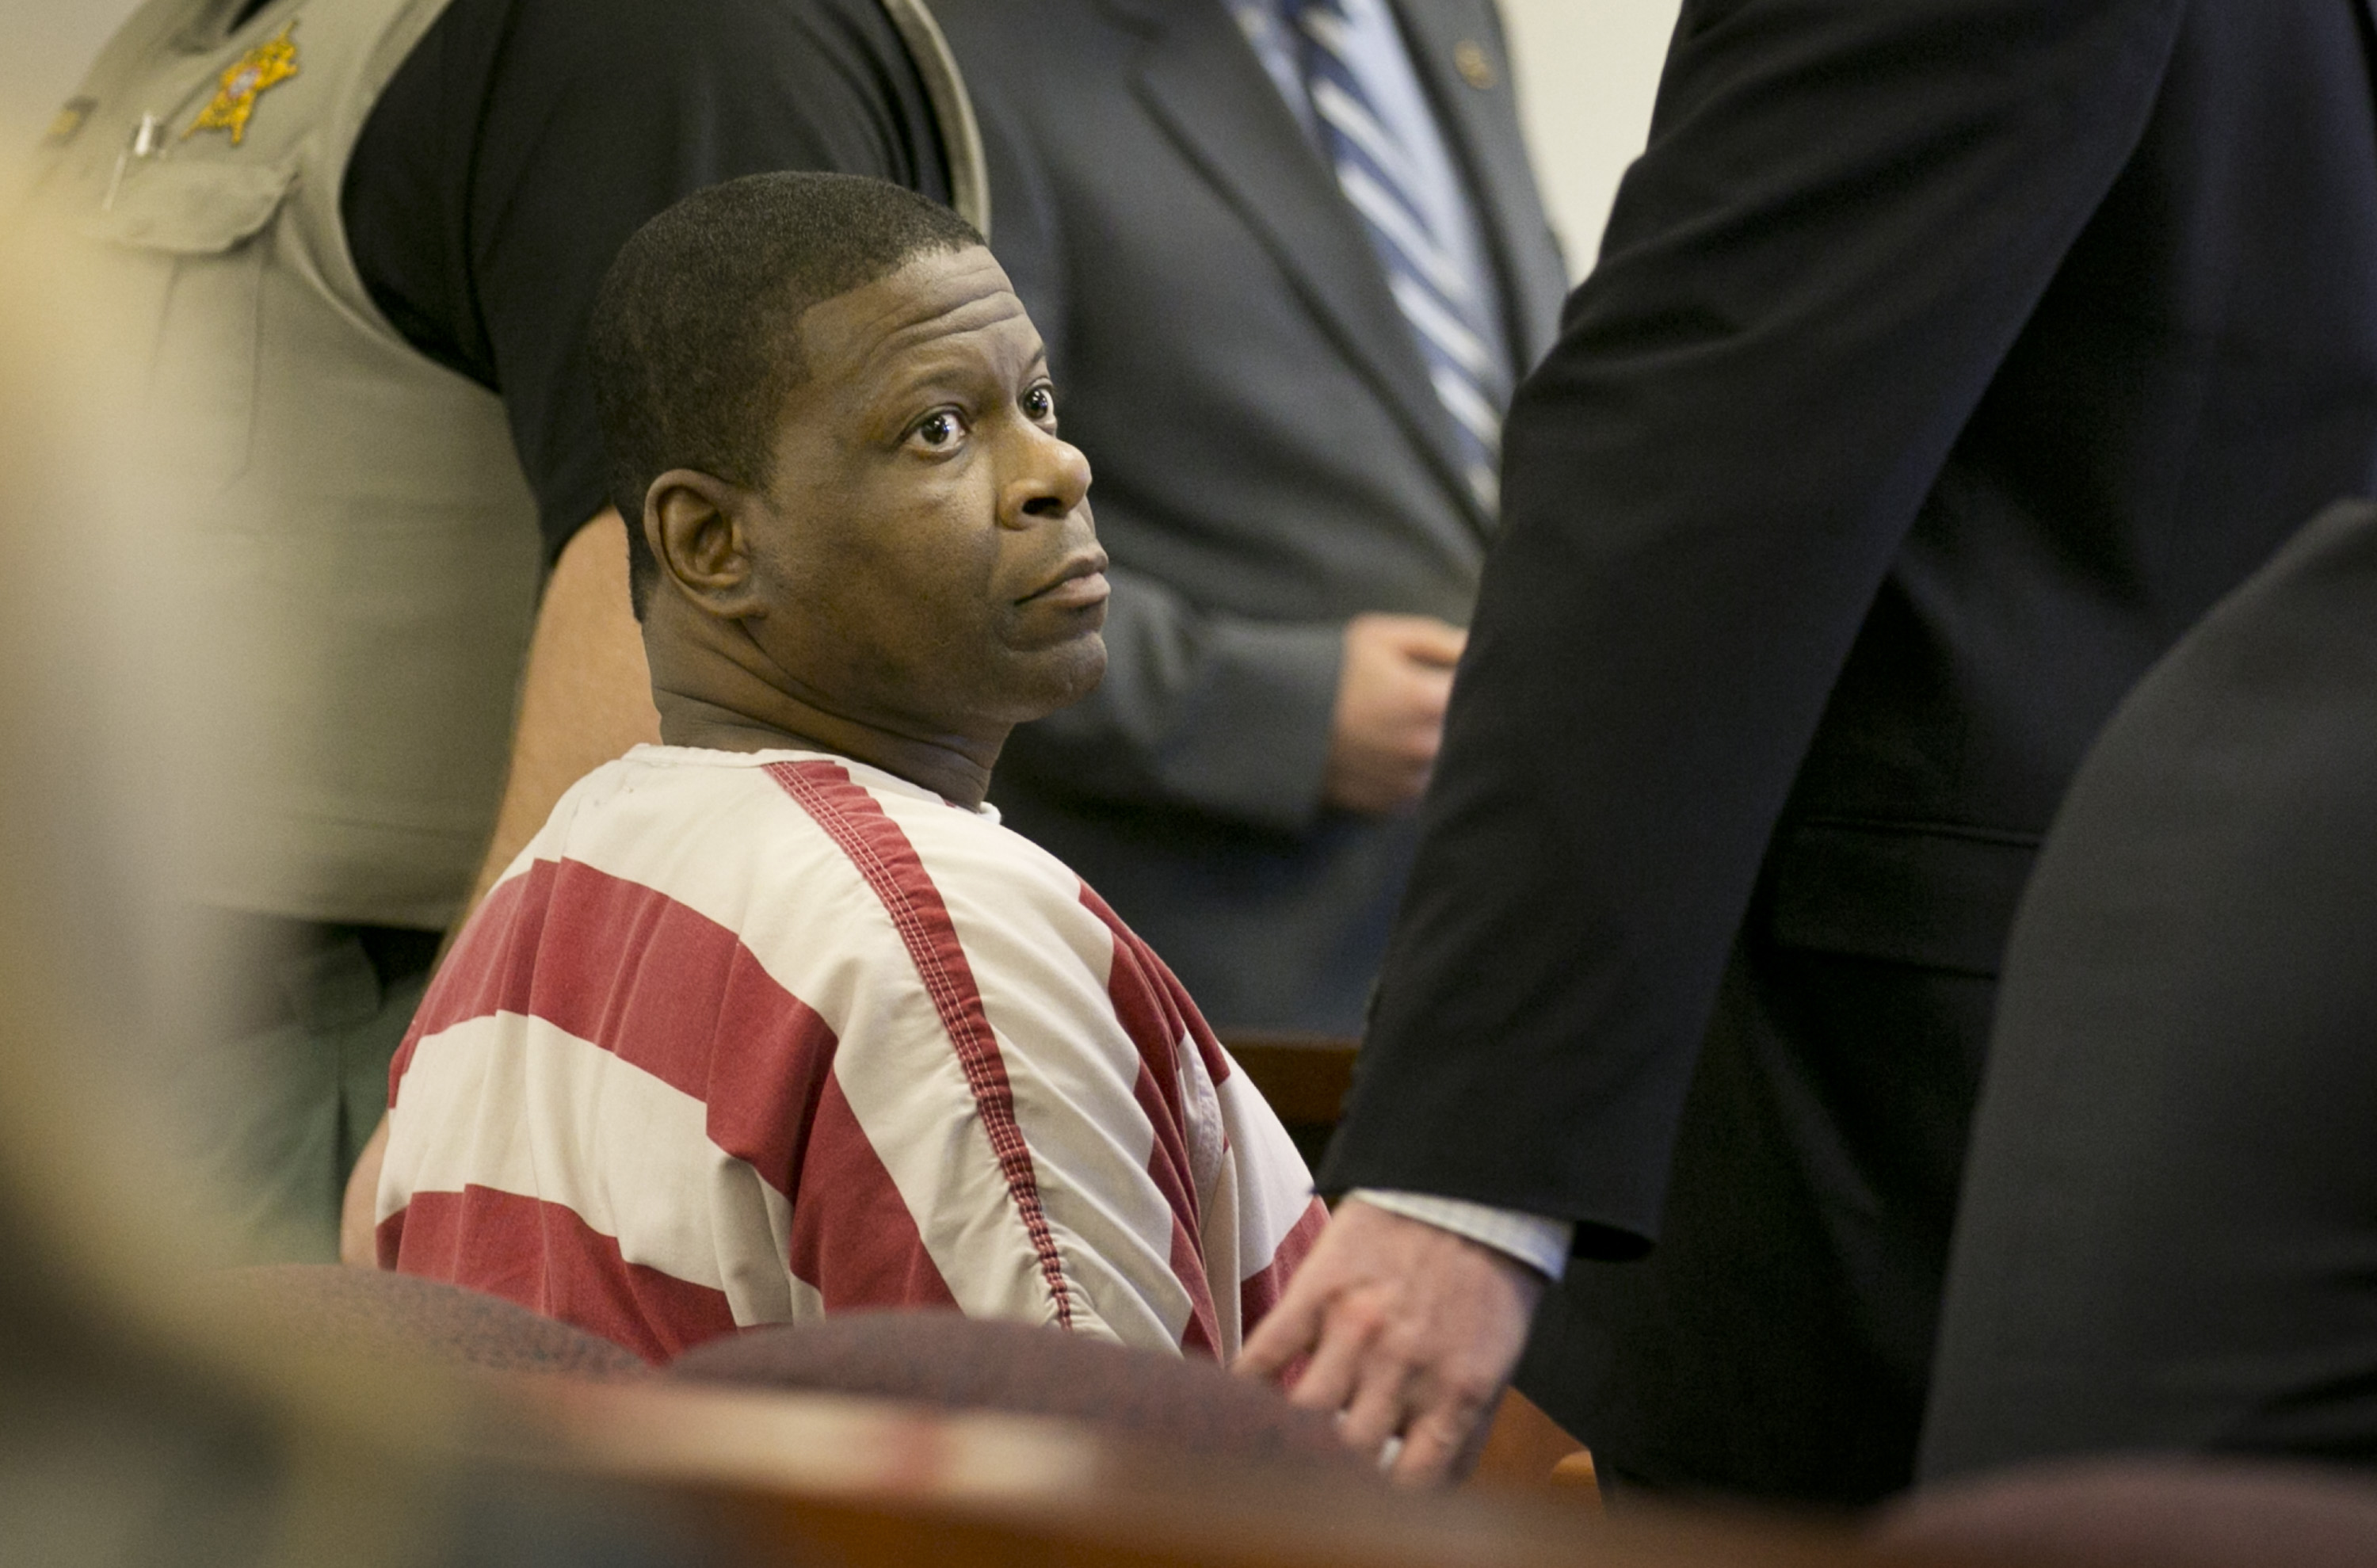 The execution of Rodney Reed has been stopped